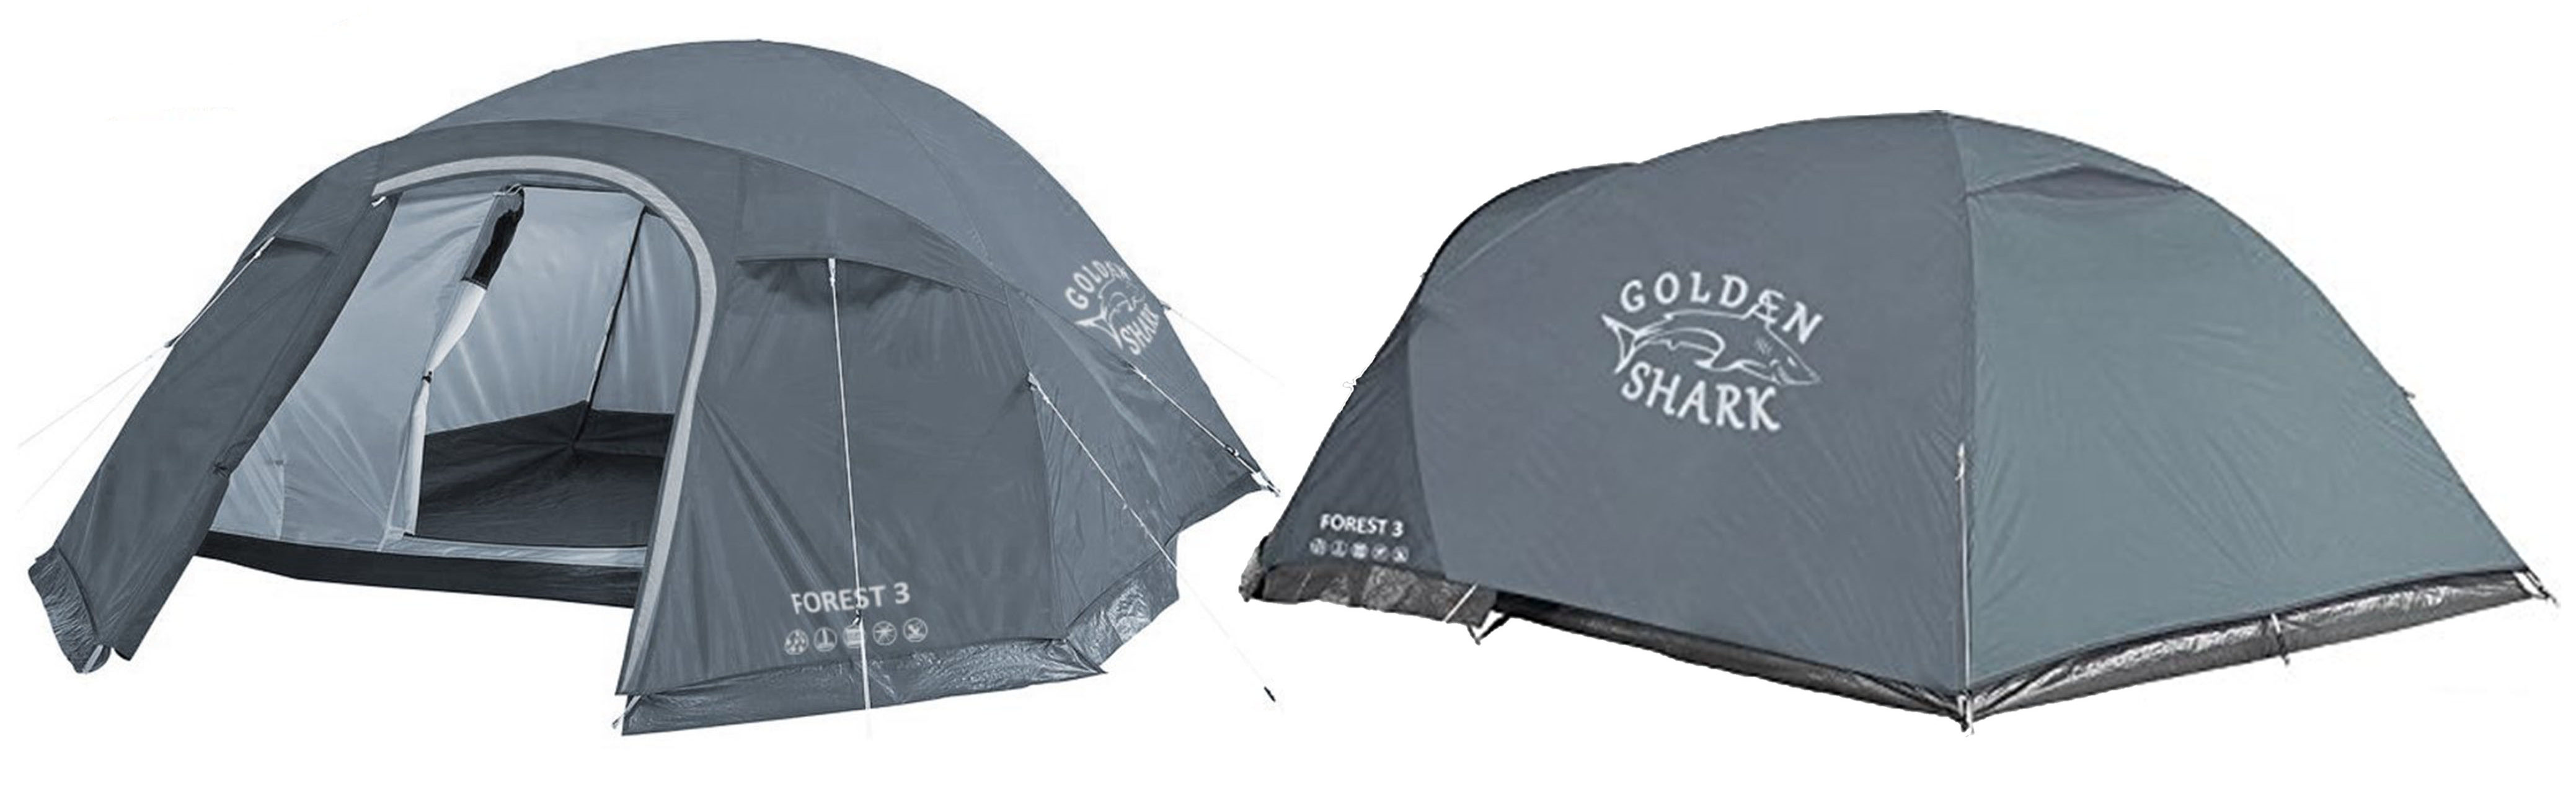 GoldenShark 3 Person Tent